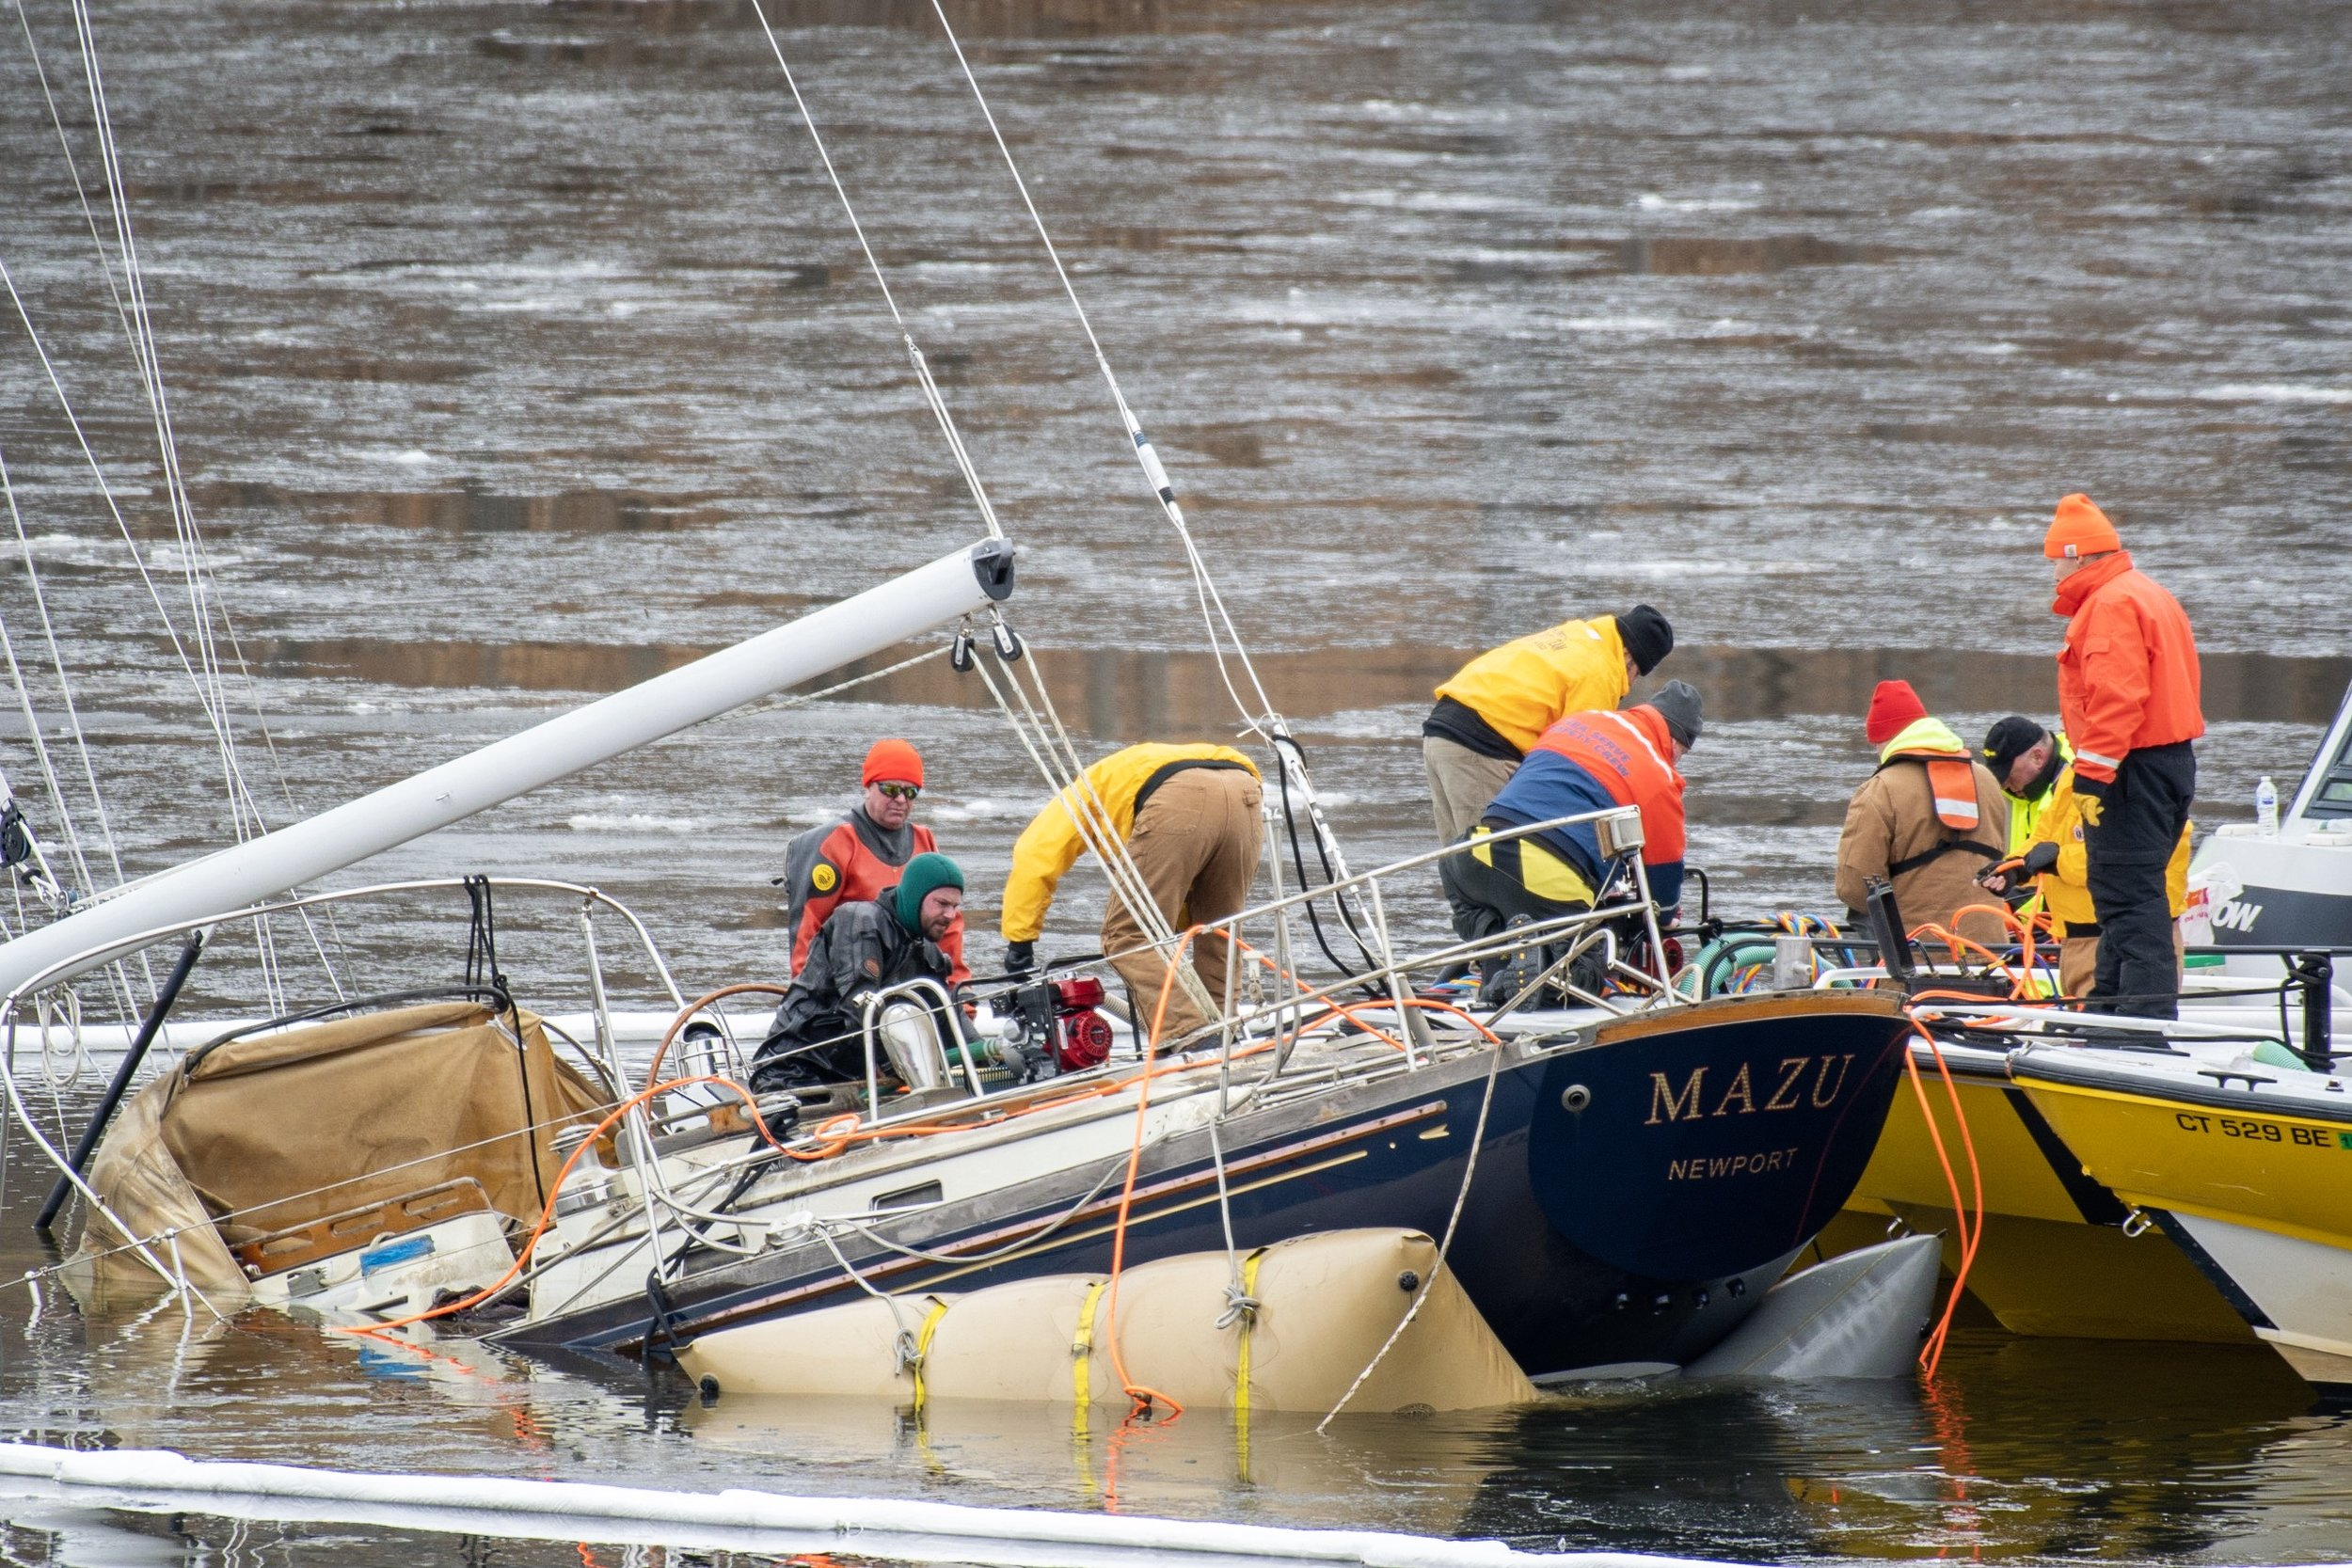 I was lucky enough to have a front row seat for the lifting of the sunken sailboat in Hamburg Cove